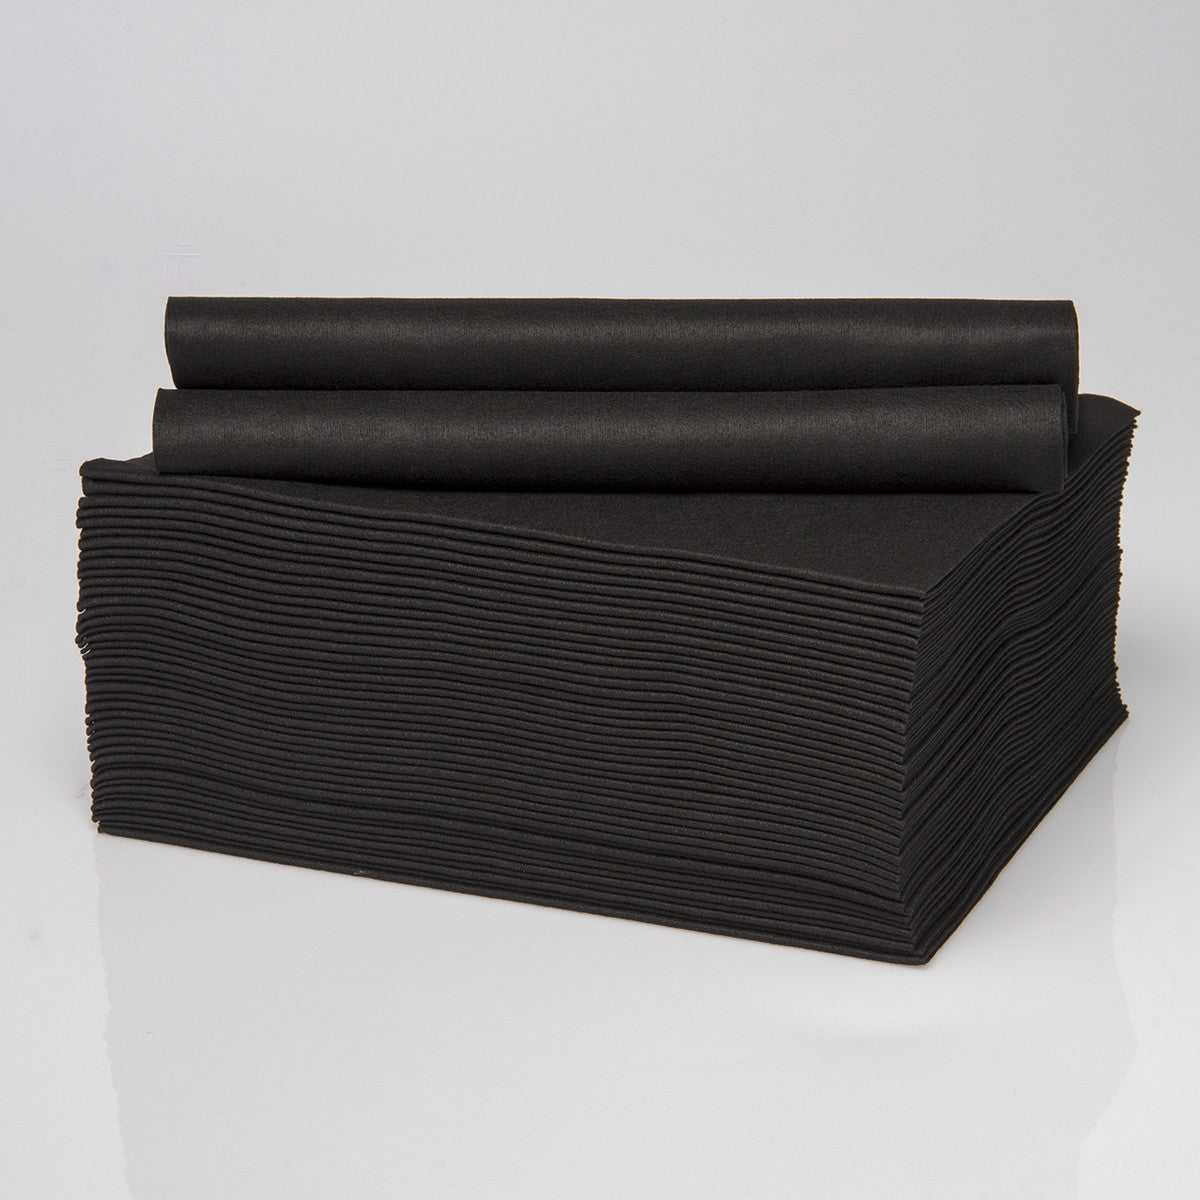 Envirodry Black Towels for Hair & Beauty Industry - Pack of 50 towels